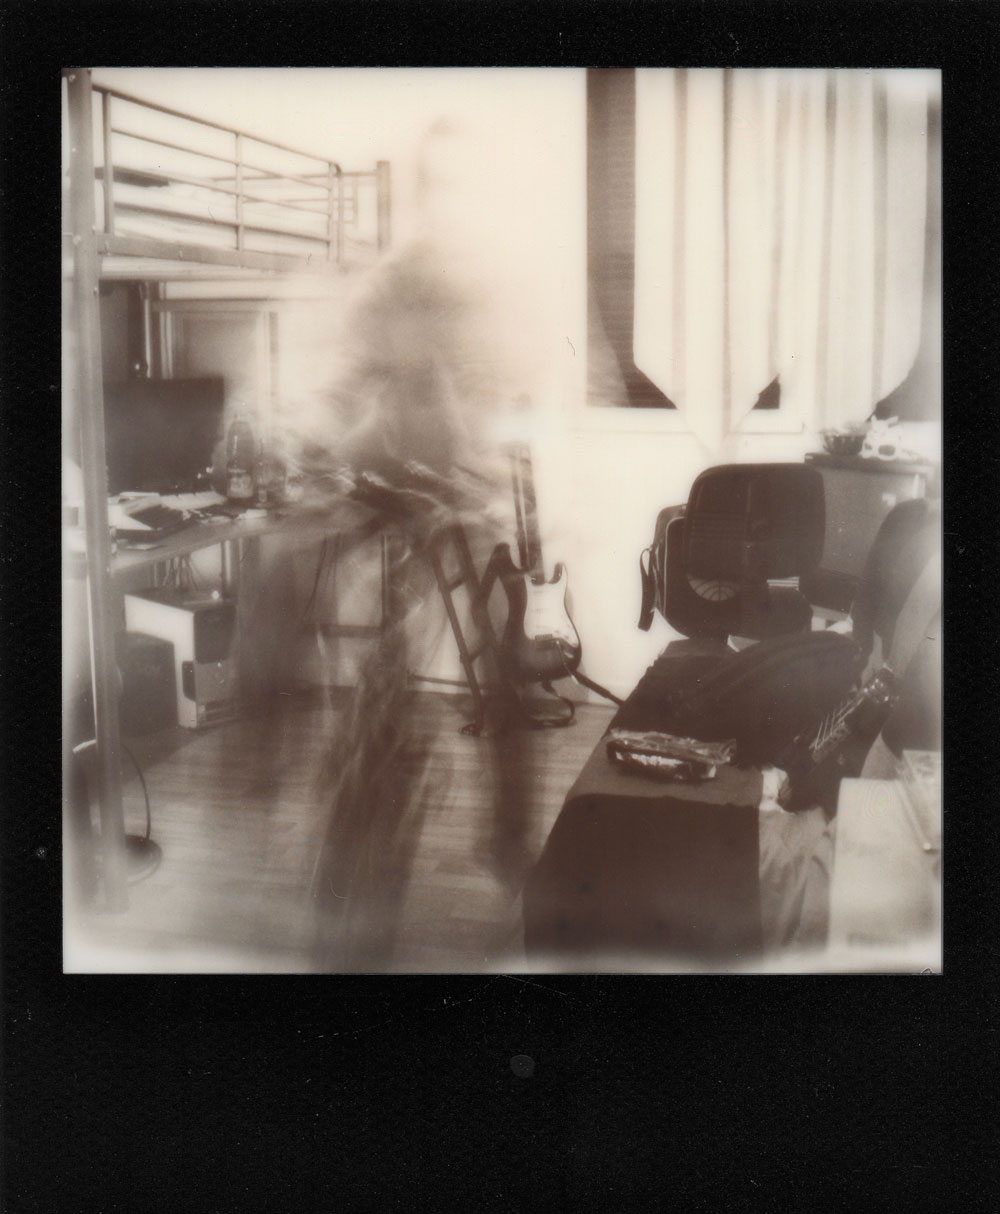 010.-Just-a-ghost-on-a-bike-in-a-flat---Polaroid-SLR680